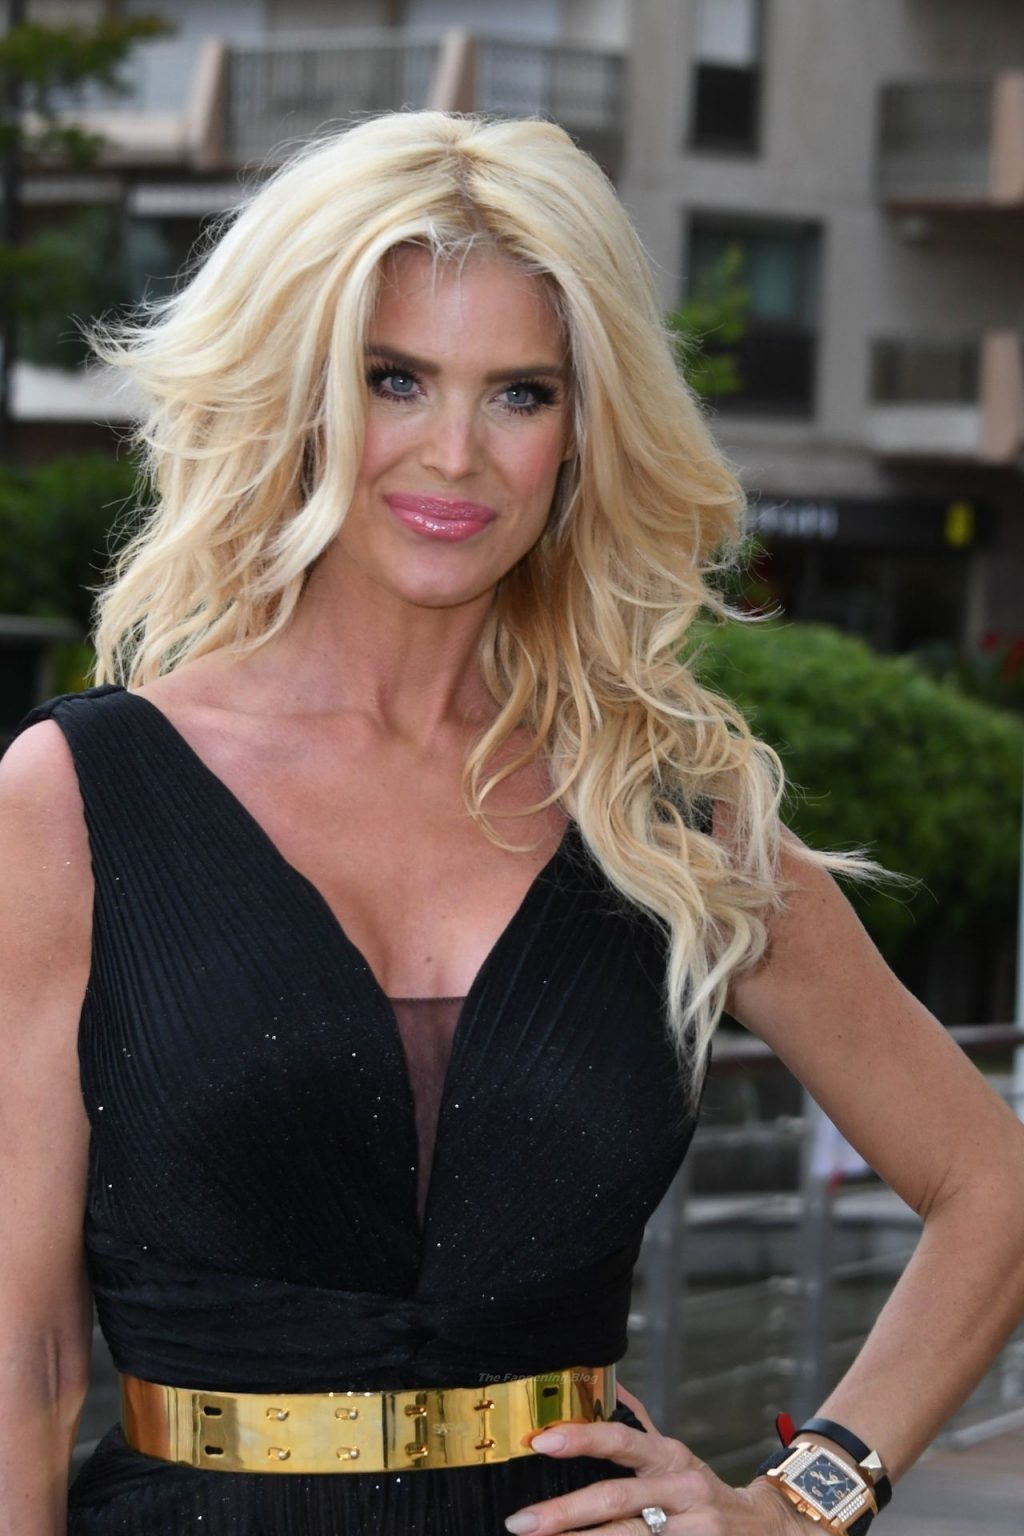 Victoria Silvstedt Shows Off Her Sexy Legs at the Amber Lounge (14 Photos)